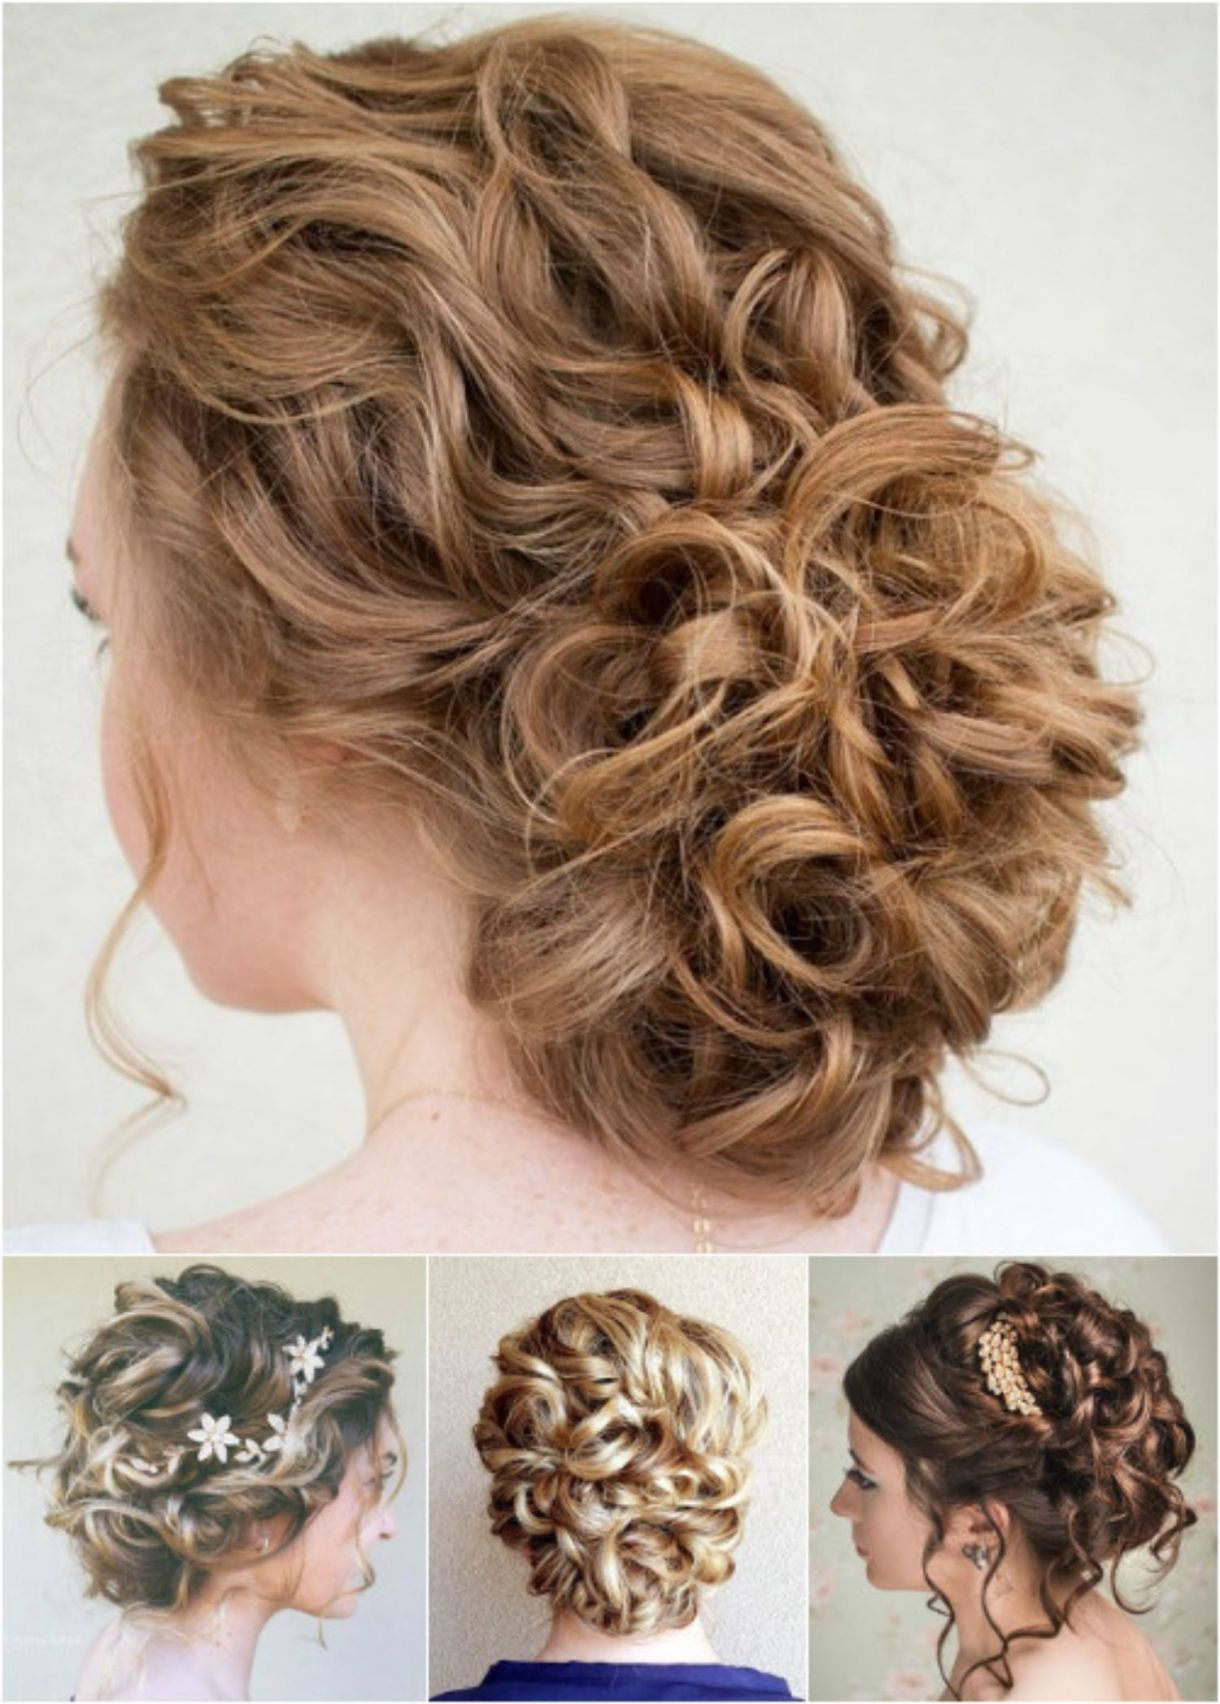 60 trendiest updos for medium length hair in 2019 | wedding